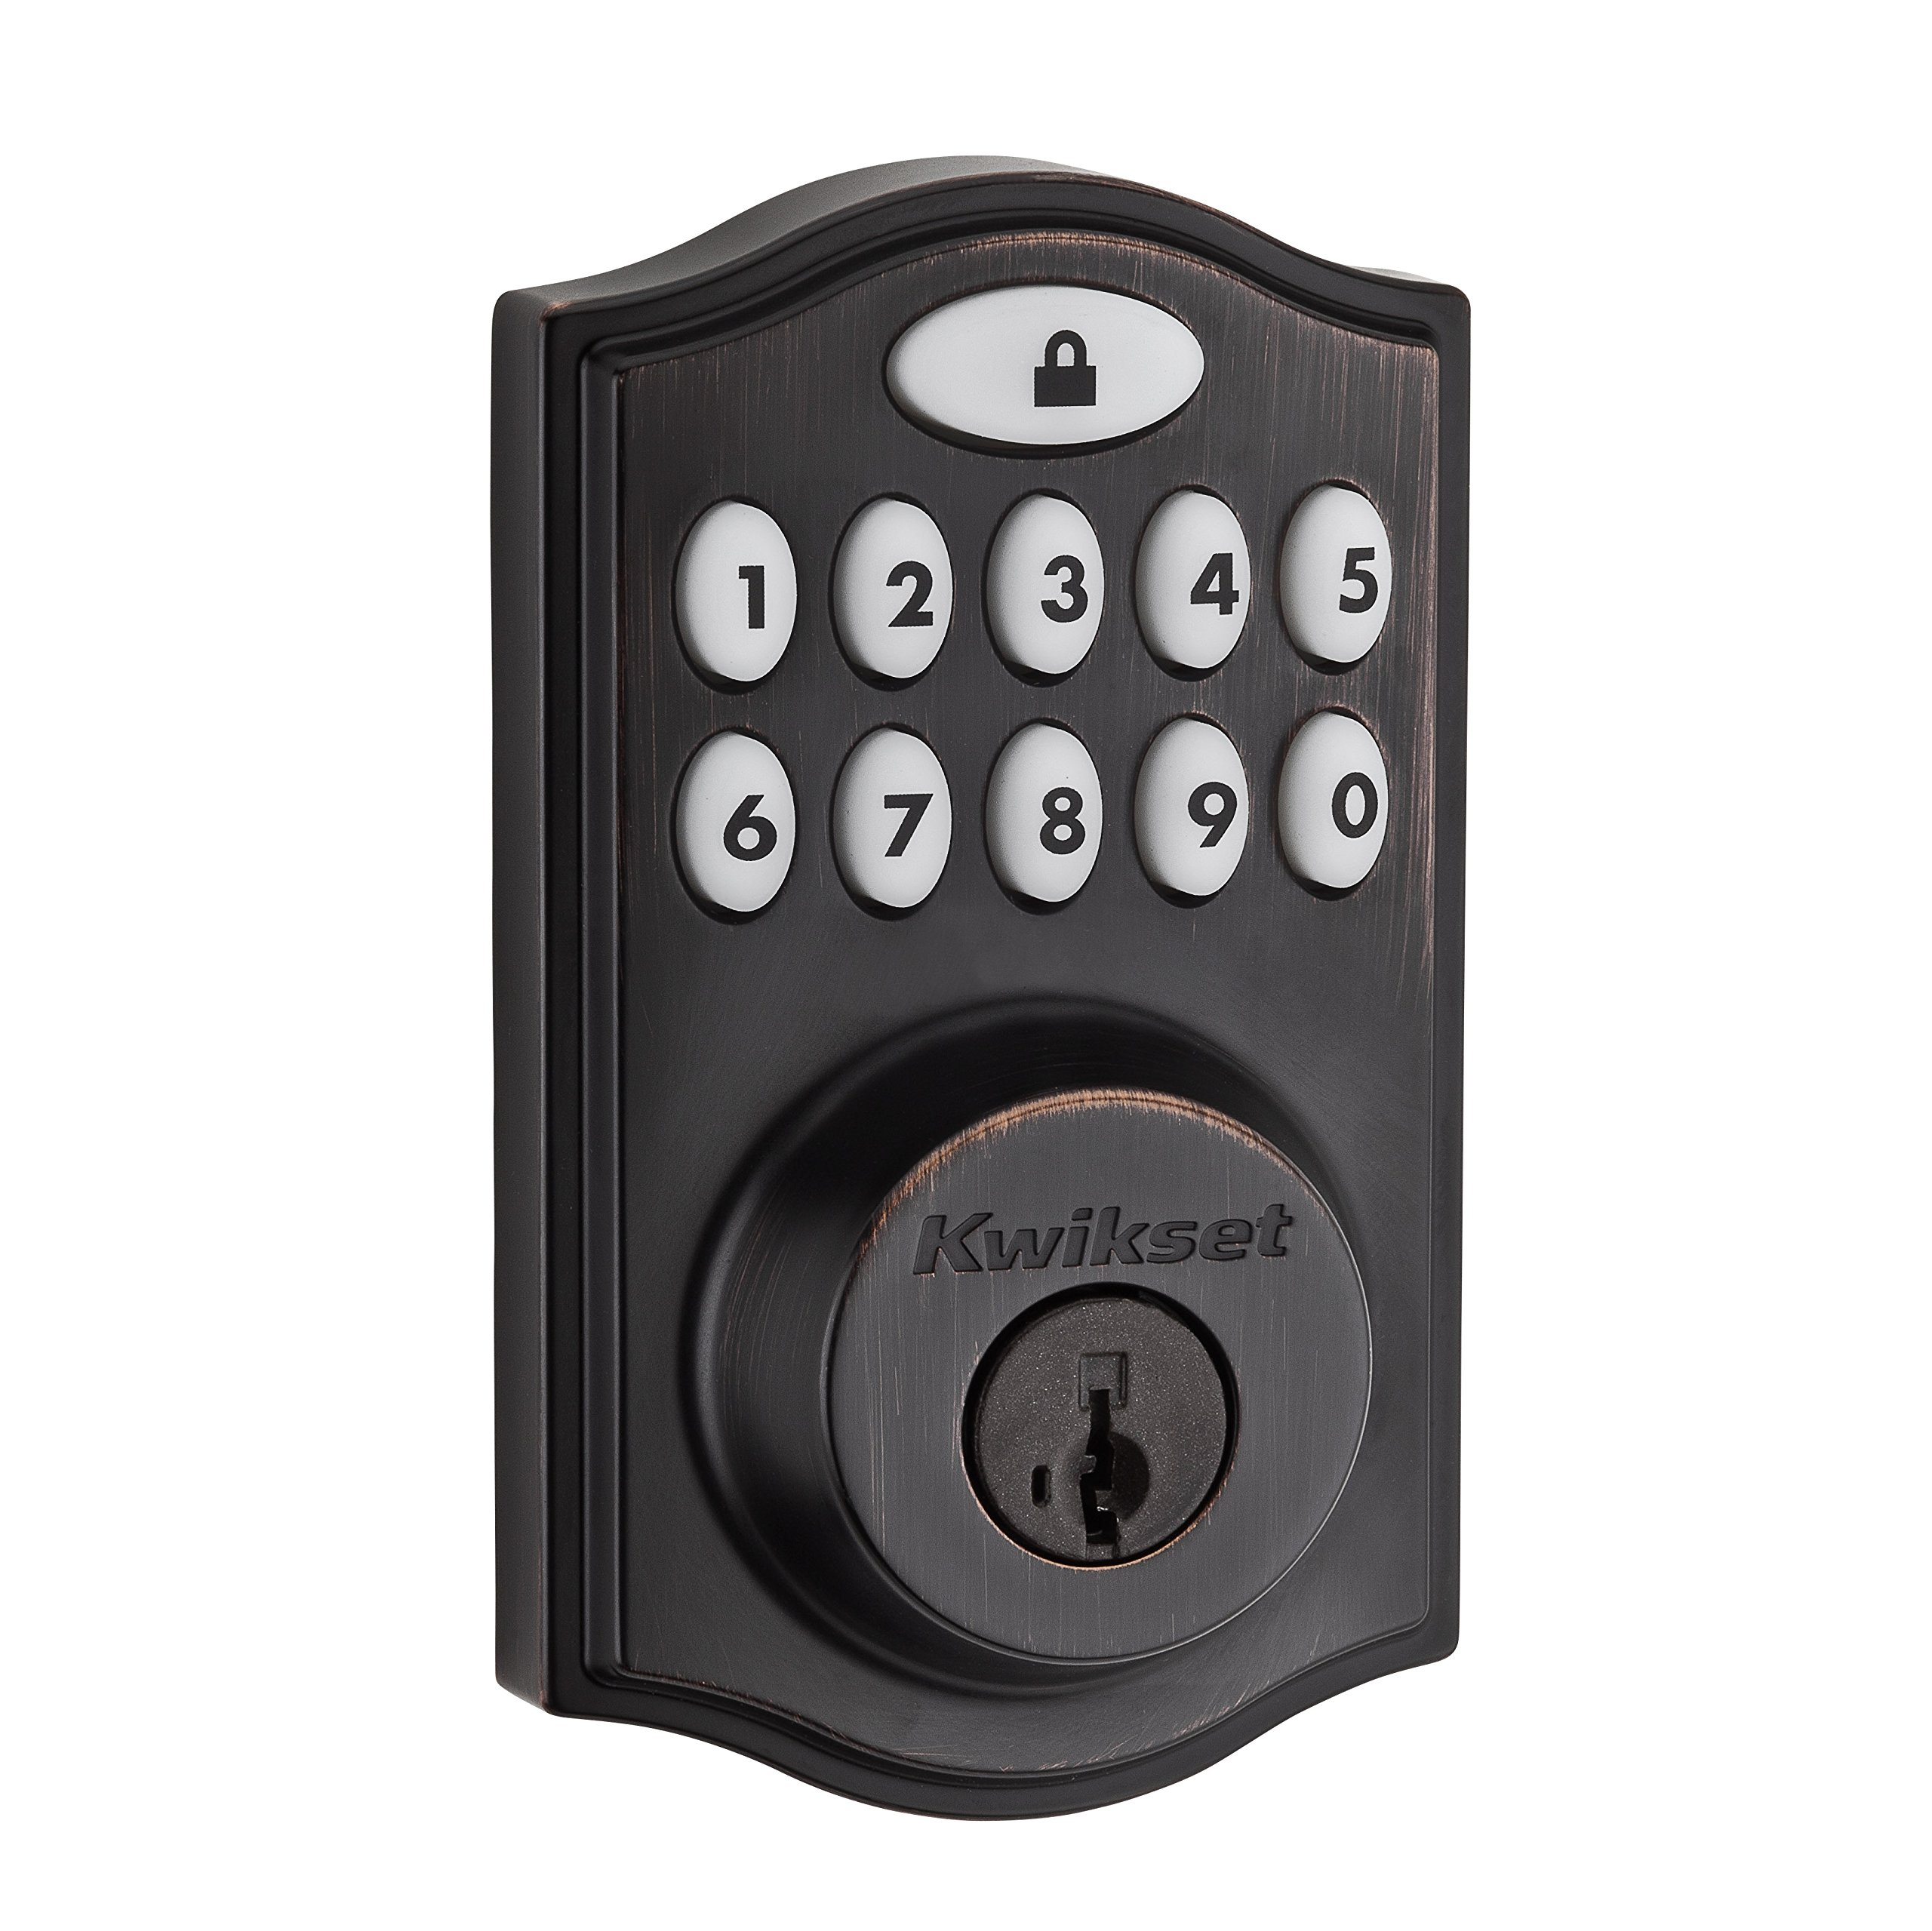 Kwikset 99140-009 SmartCode ZigBee Touchpad Smart Lock works with Echo Plus & Alexa, featuring SmartKey, Venetian Bronze by Kwikset